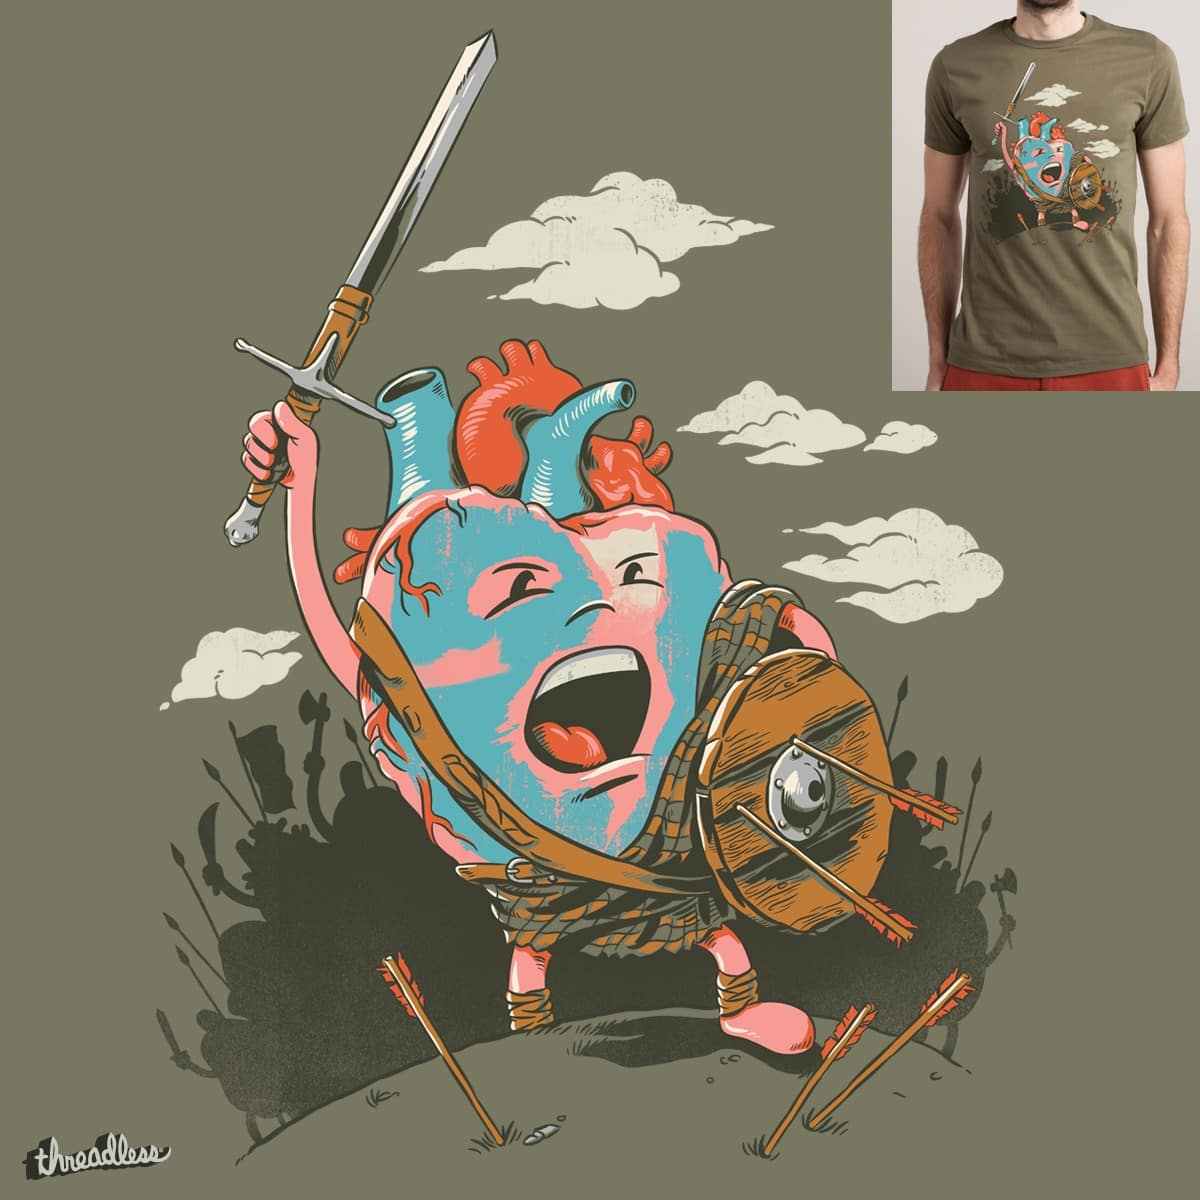 Braveheart by cpdesign on Threadless